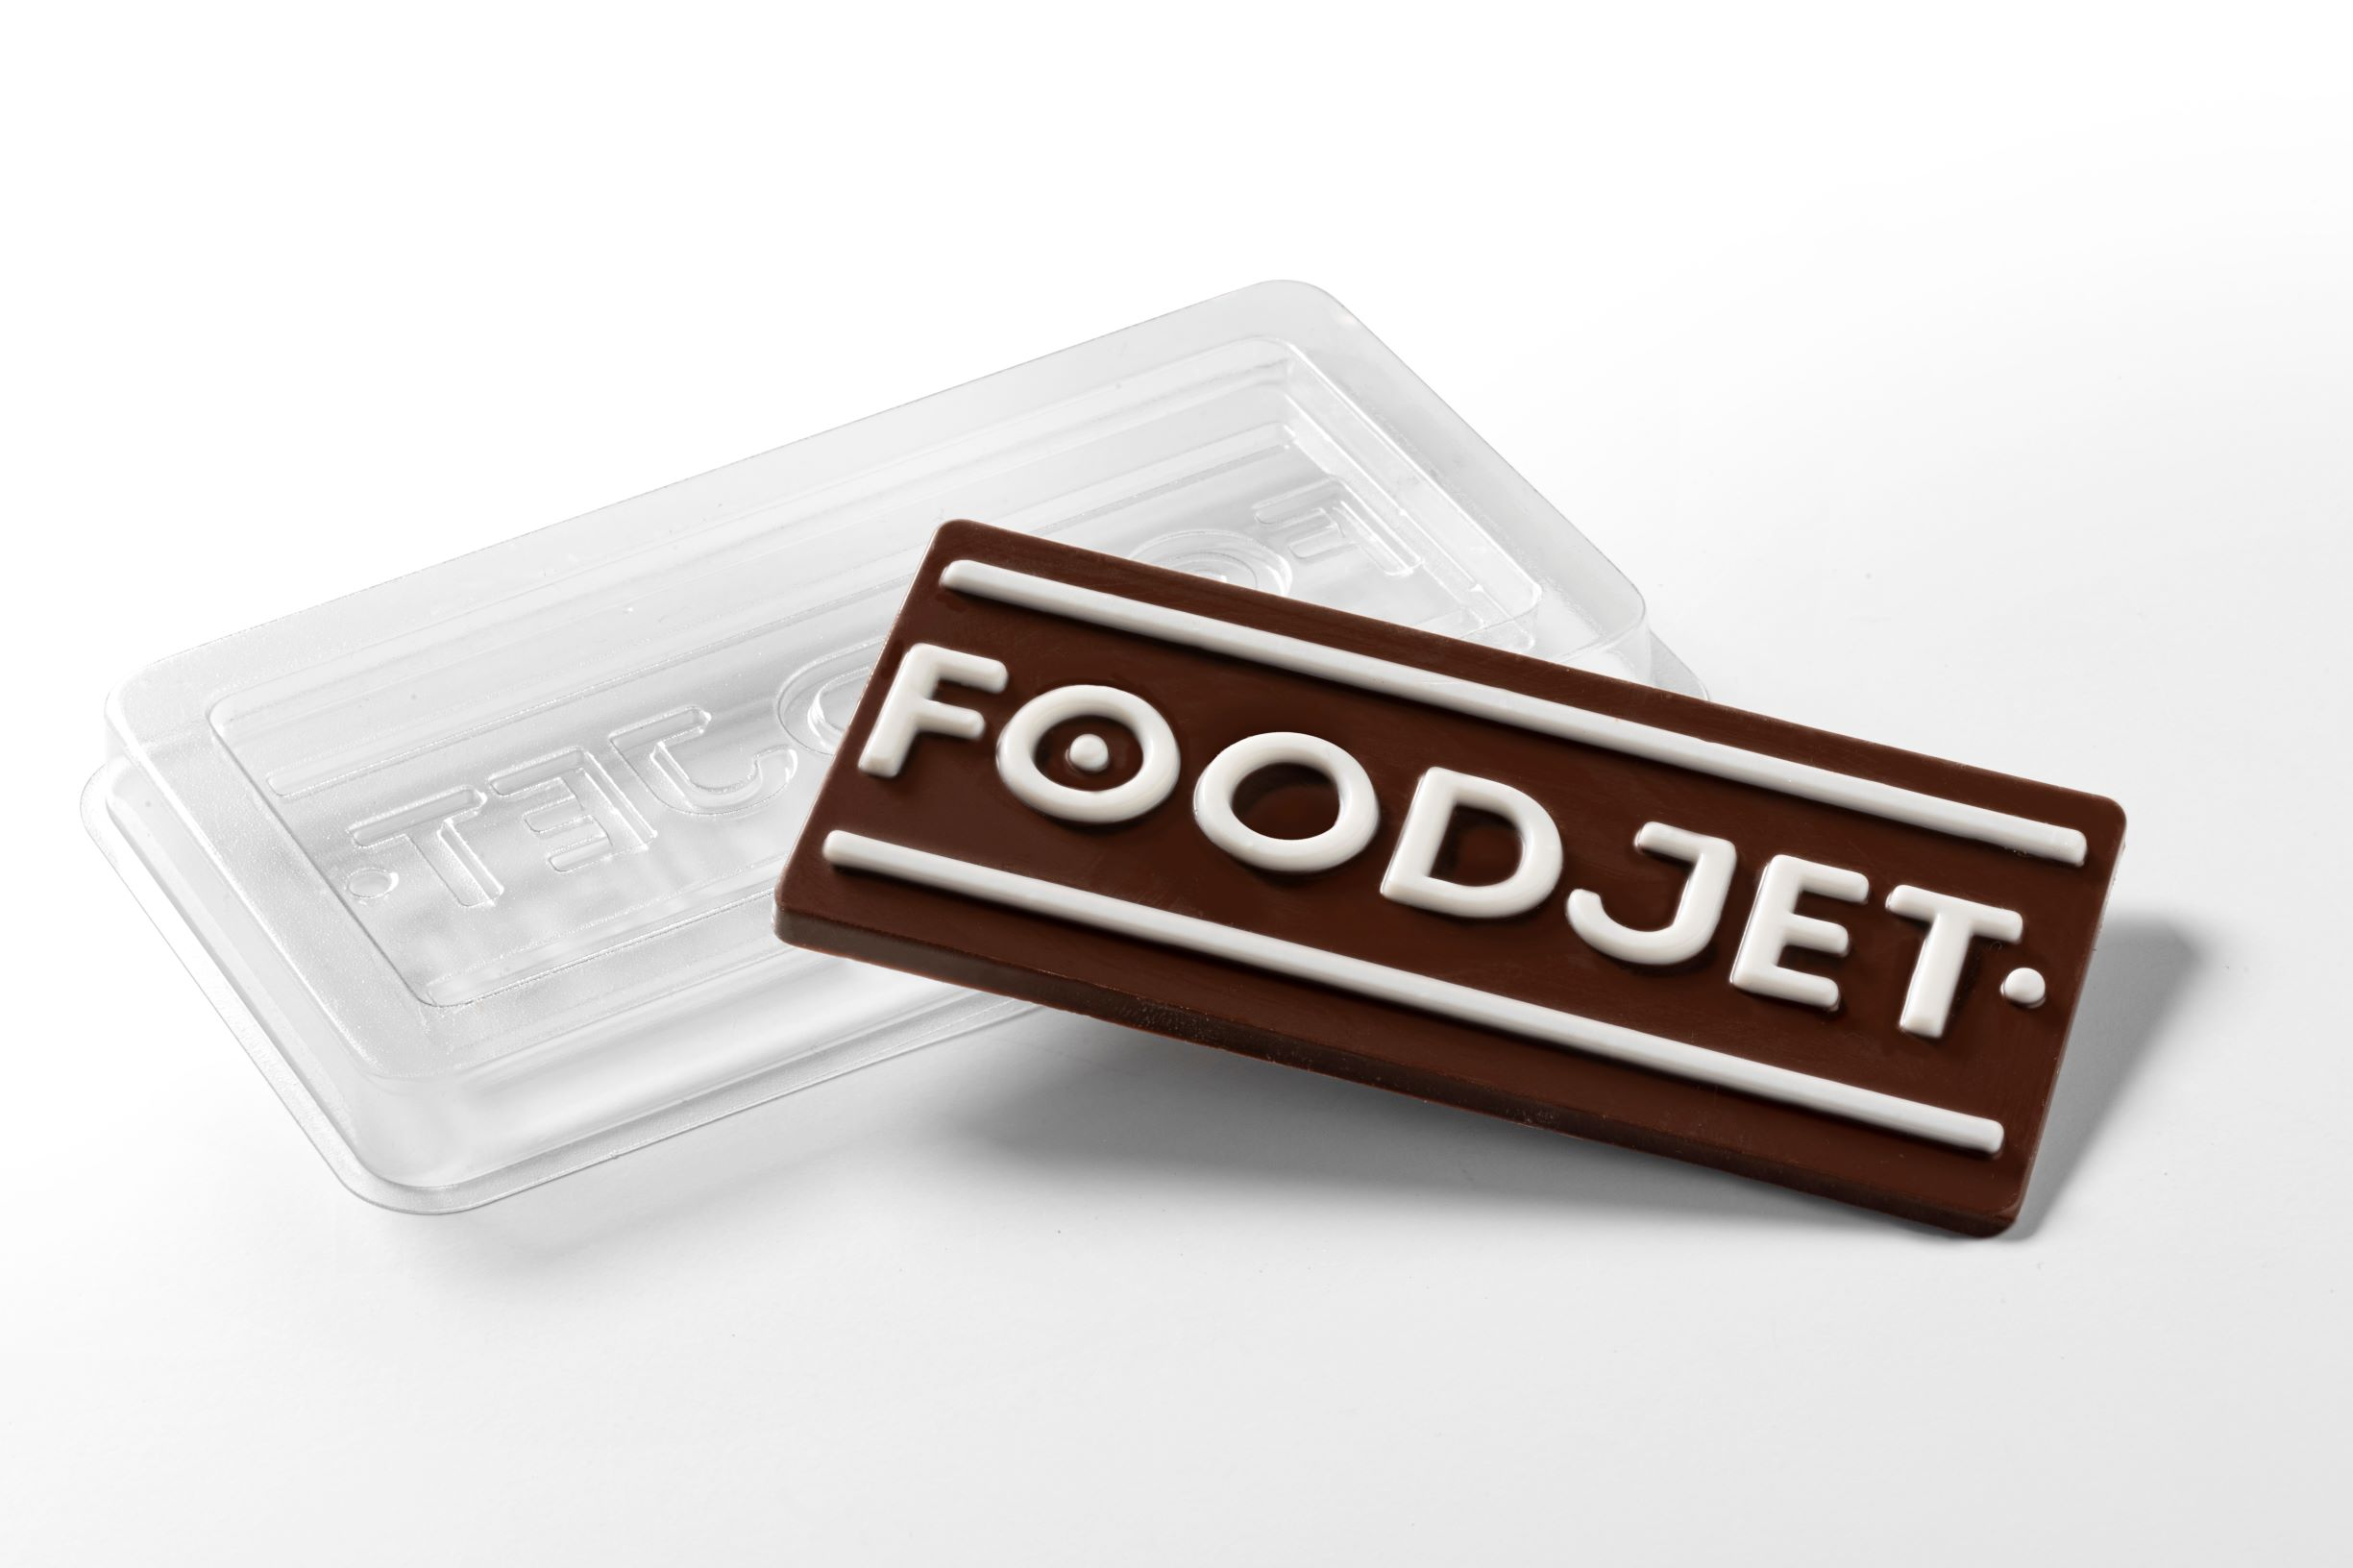 Milk chocolate bar with white cavity filled chocolate print by FoodJet chocolate depositor